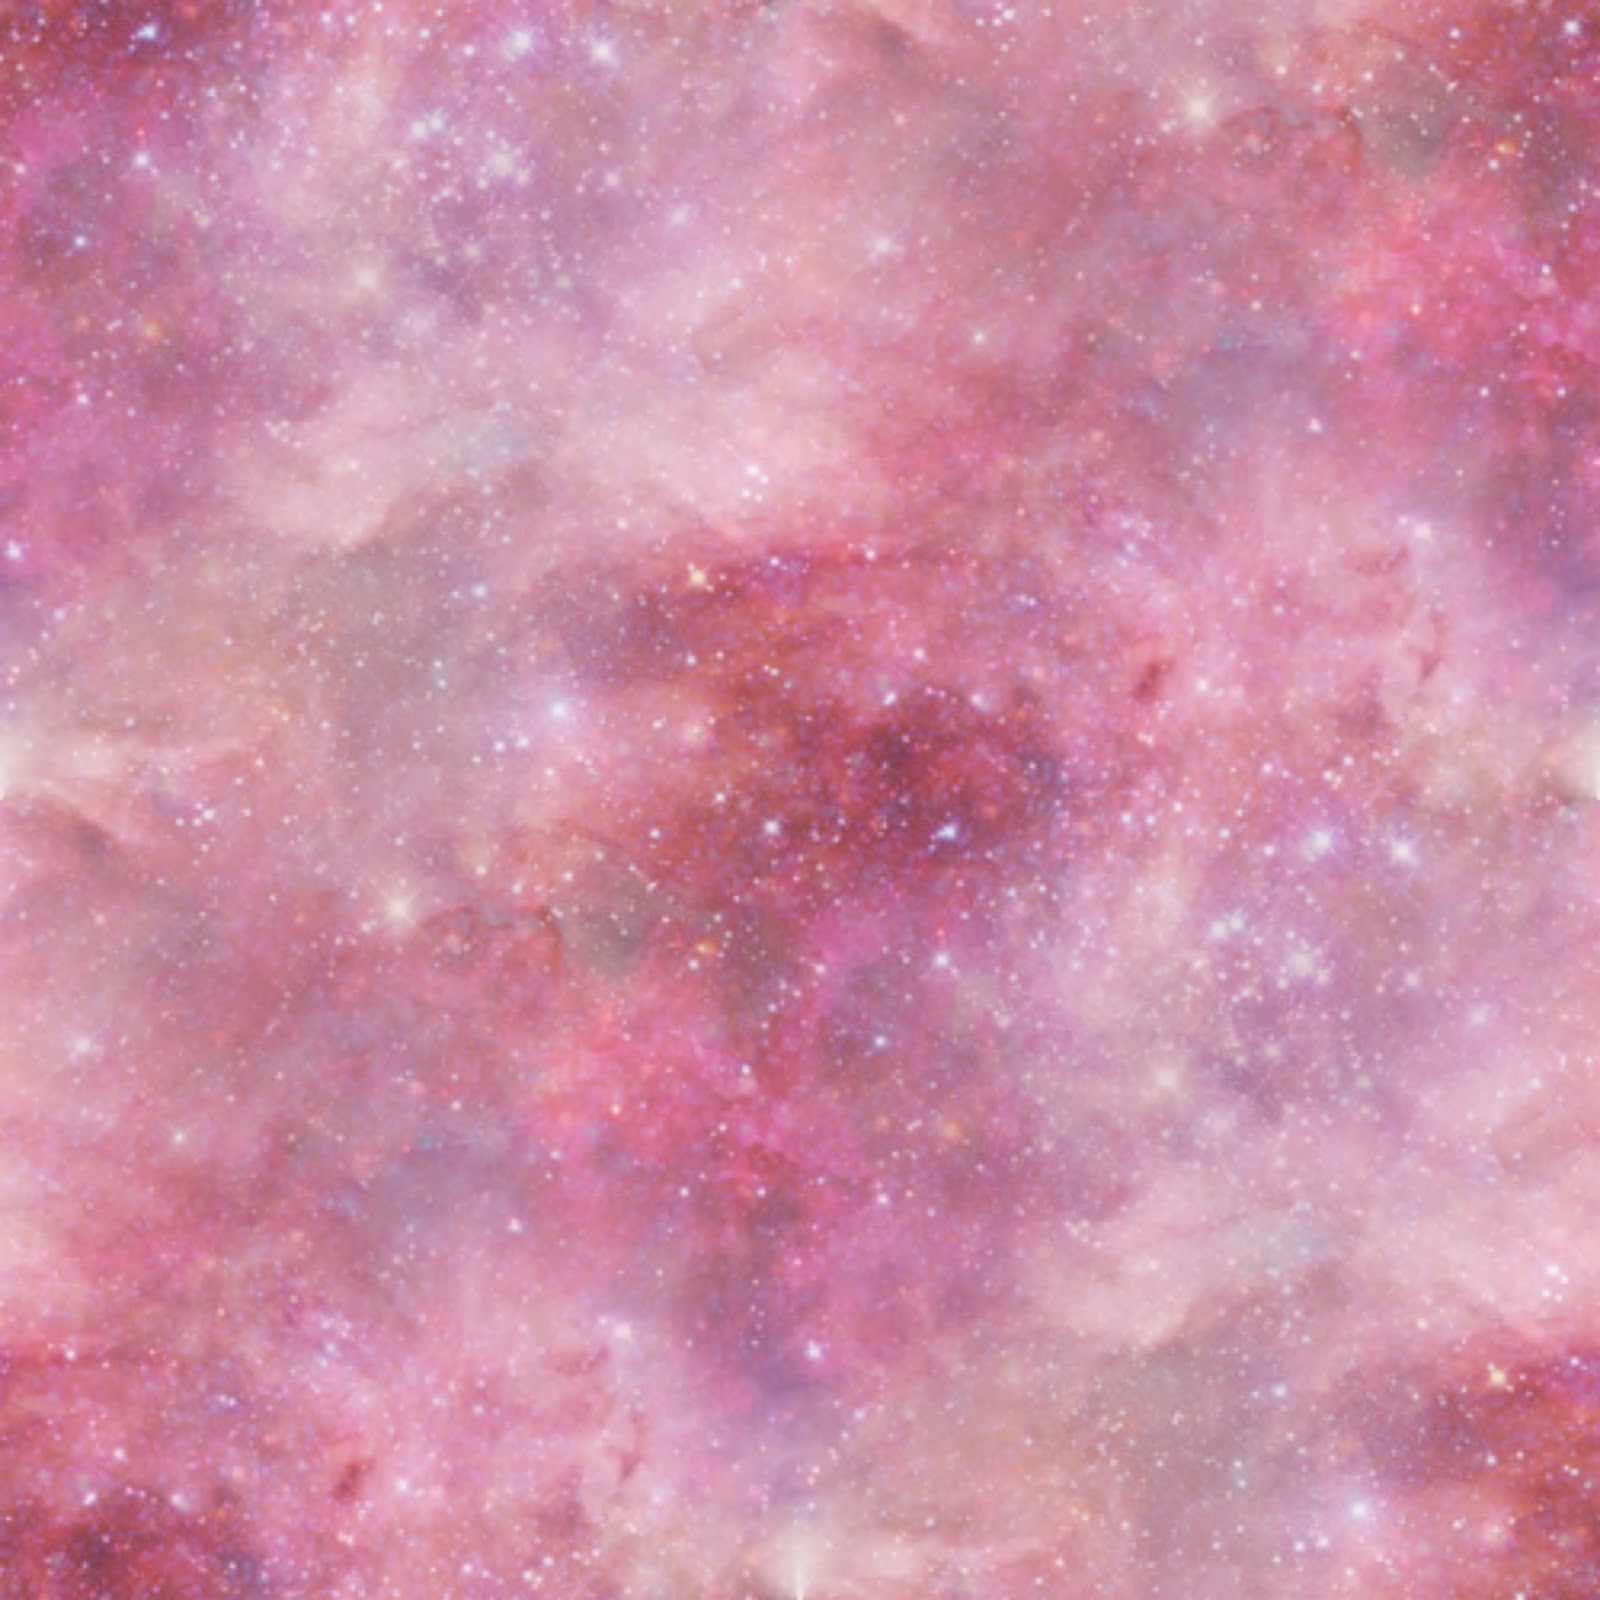 Pastel Pink Tumblr Galaxy Free Download Wallpaper